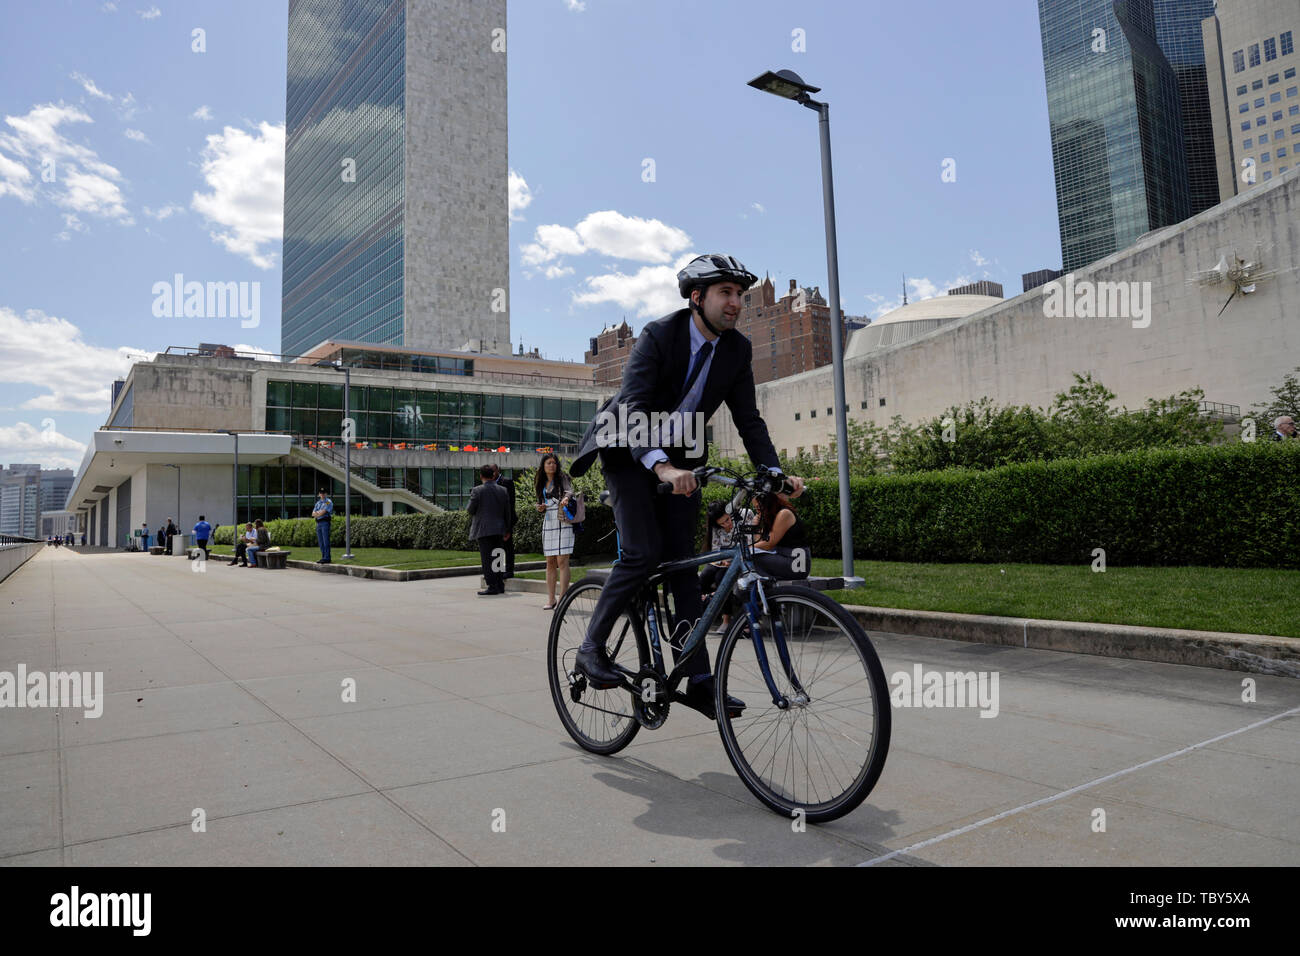 United Nations. 3rd June, 2019. A man rides his bicycle during an event to commemorate the first World Bike Day at the UN headquarters in New York, June 3, 2019. The United Nations on Monday commemorated World Bicycle Day to acknowledge the uniqueness, longevity and versatility of bicycles. Credit: Li Muzi/Xinhua/Alamy Live News - Stock Image